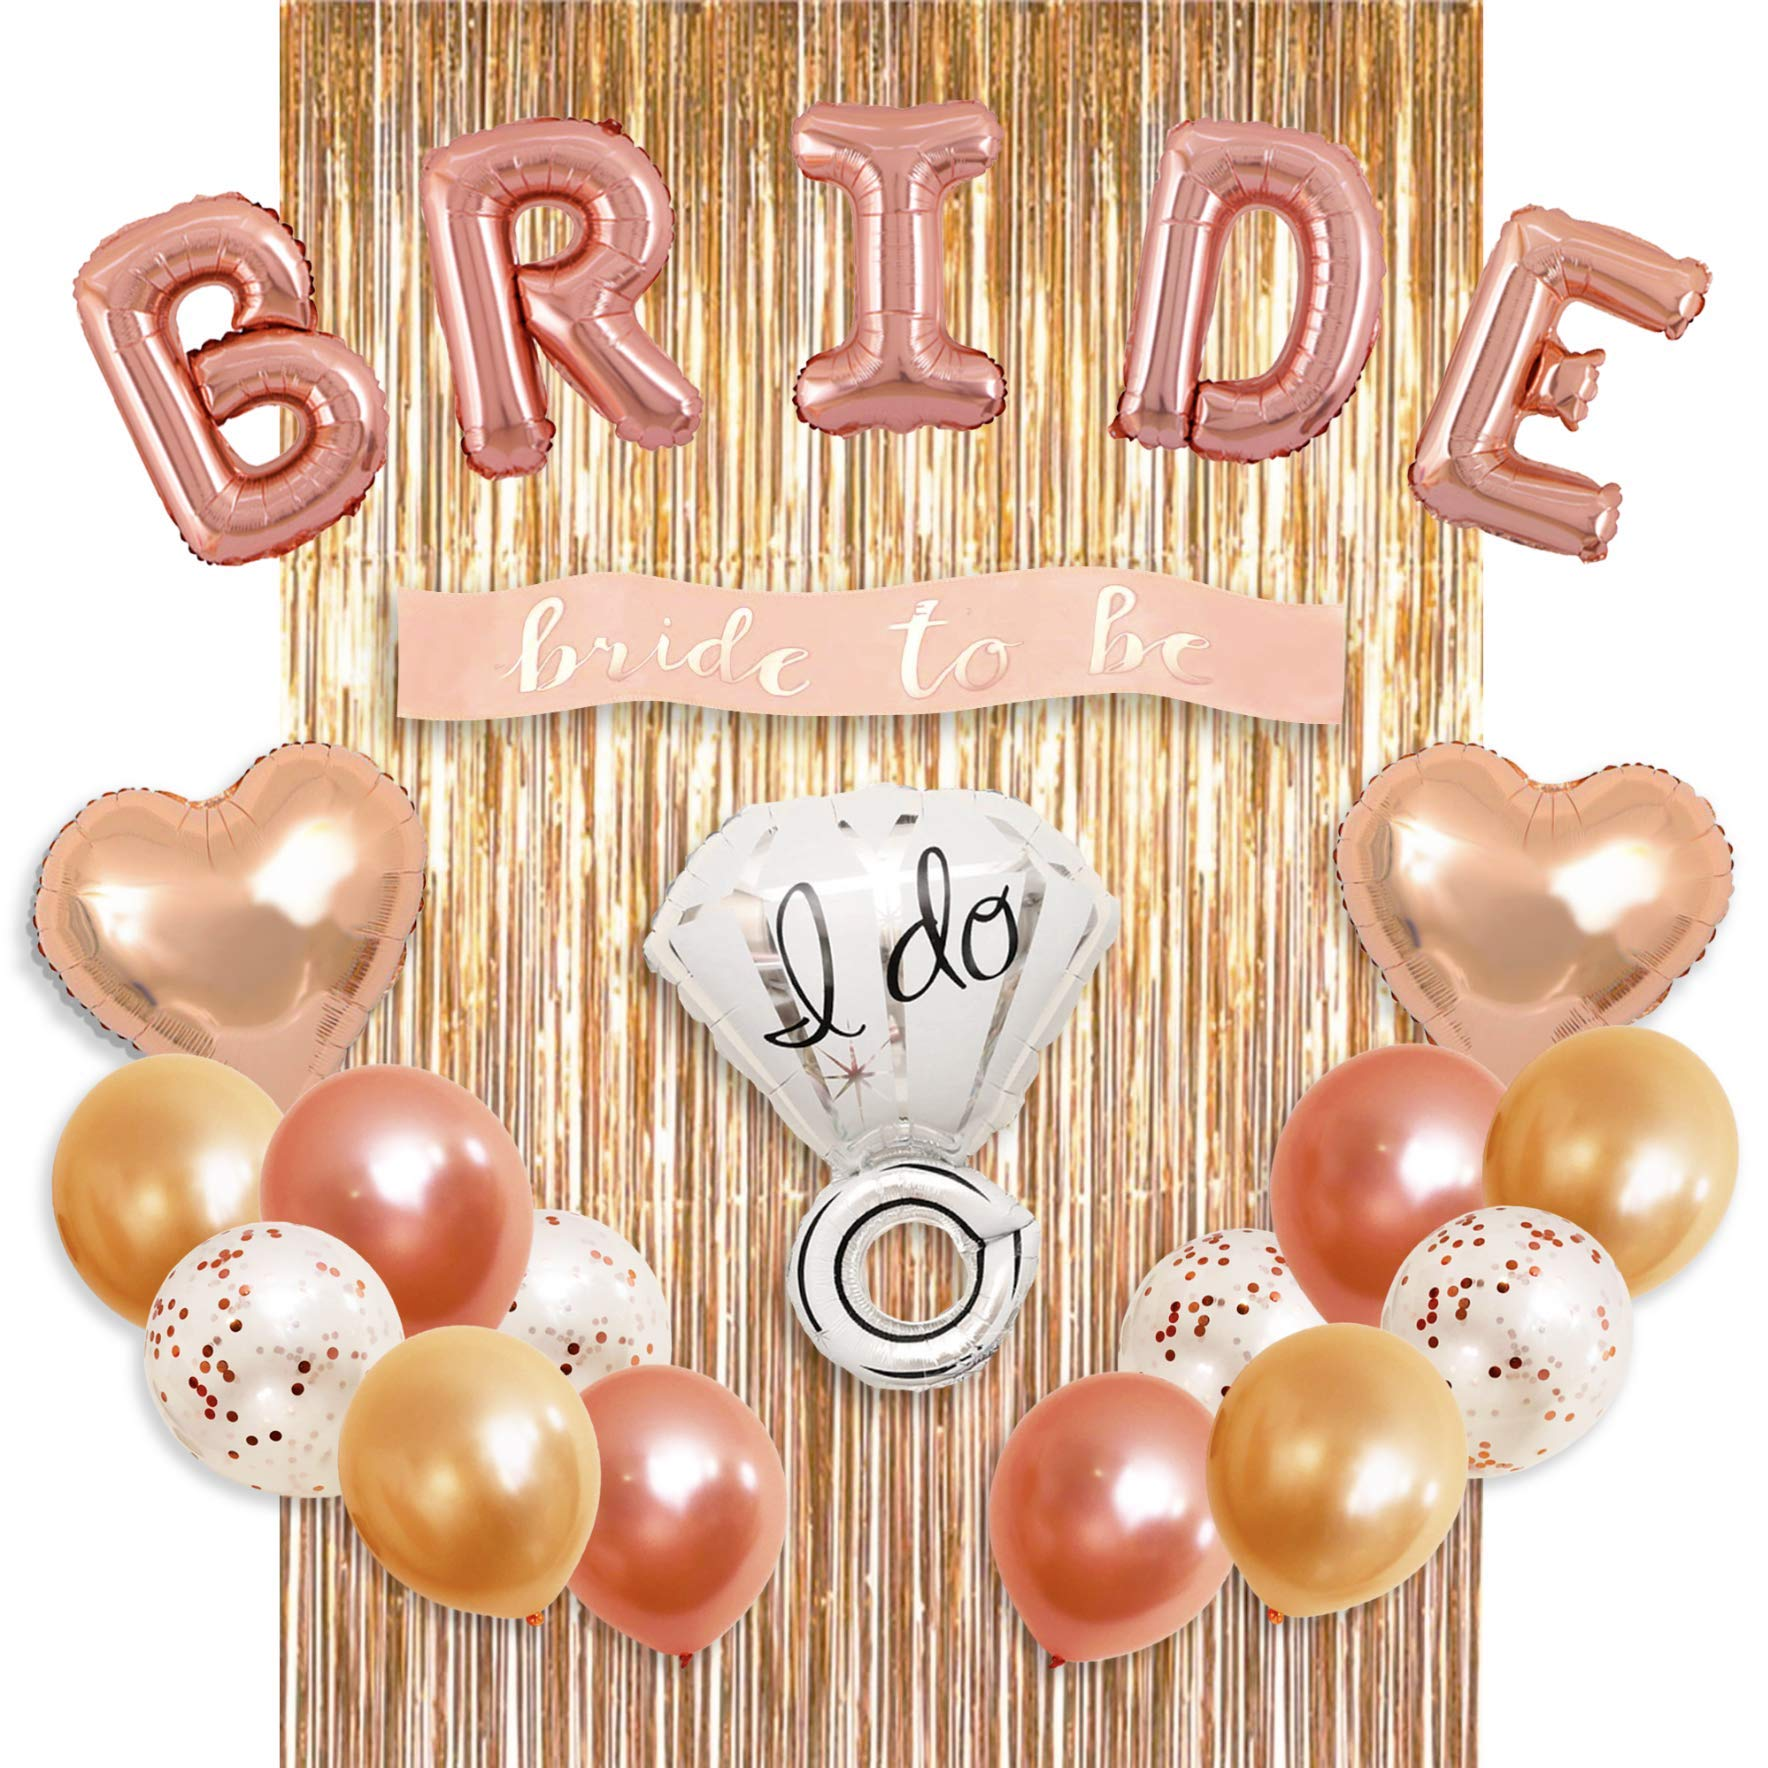 Bachelorette Party Decorations Bridal Shower kit - BRIDE Foil Balloon, Ring Foil Balloon, 2 Heart Foil Balloons, 12 Latex Balloons, Metallic Foil Fringe Curtains, Party Supplies by MM Design by MM Design